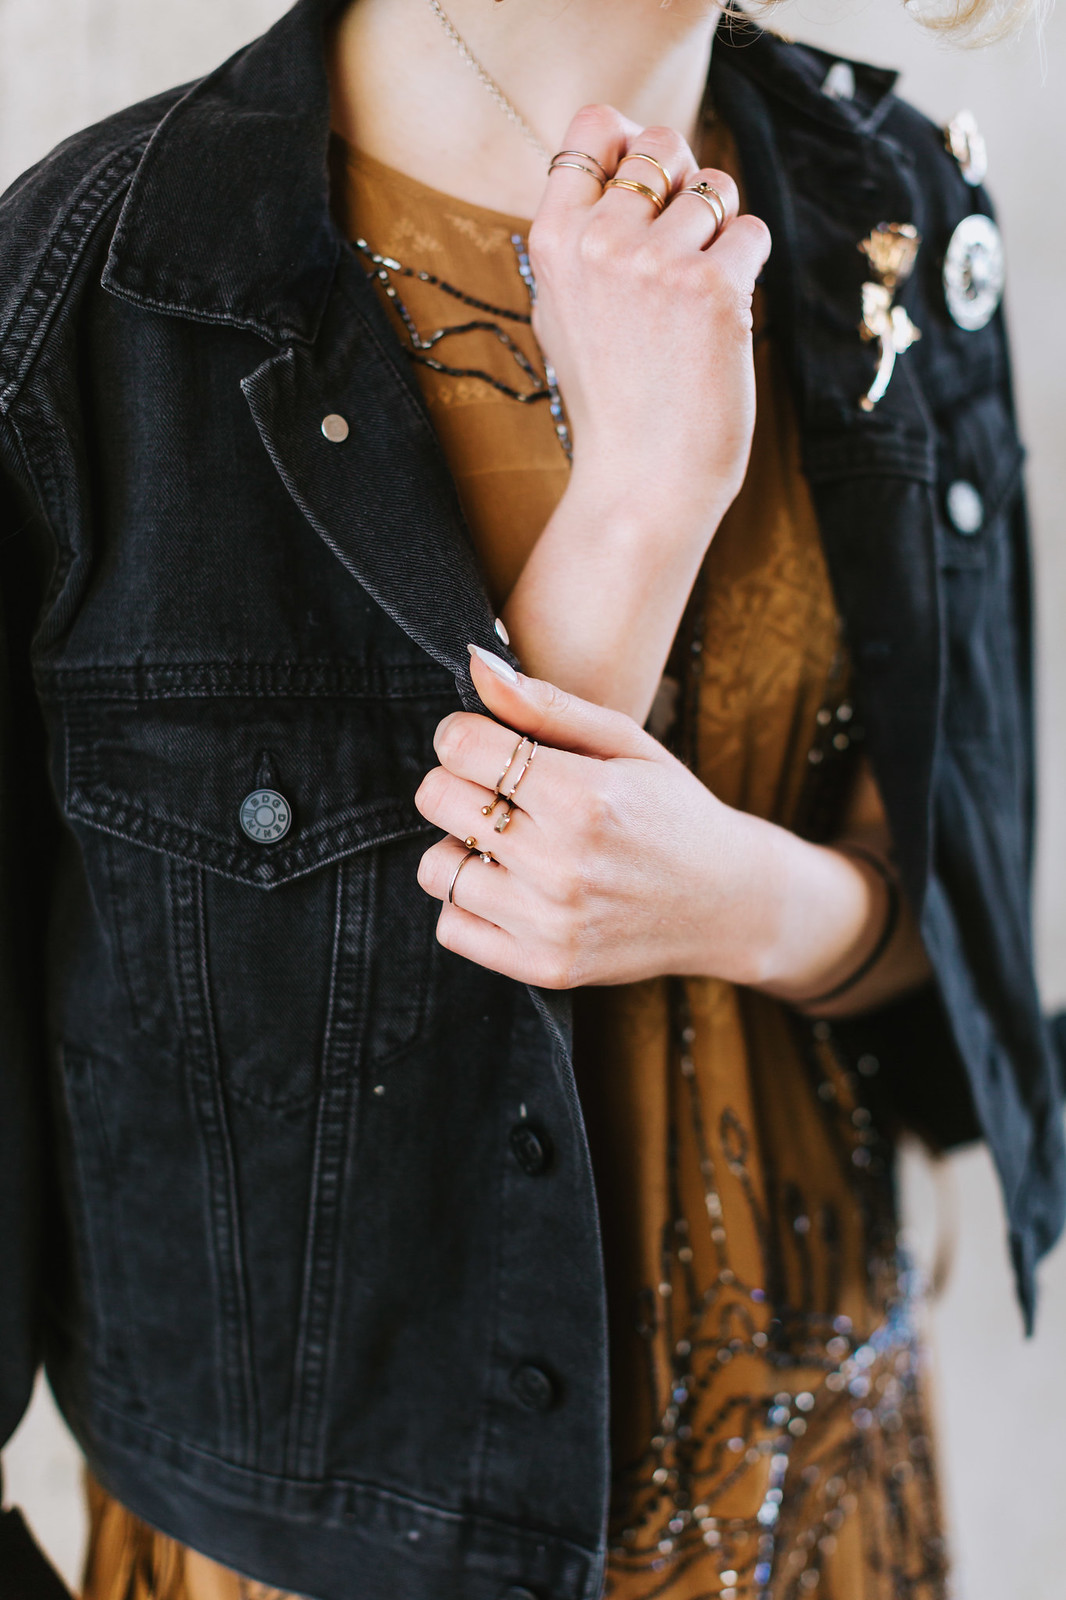 Metal Pins and Black Denim shot by Lena Mirisola on juliettelaura.blogspot.com